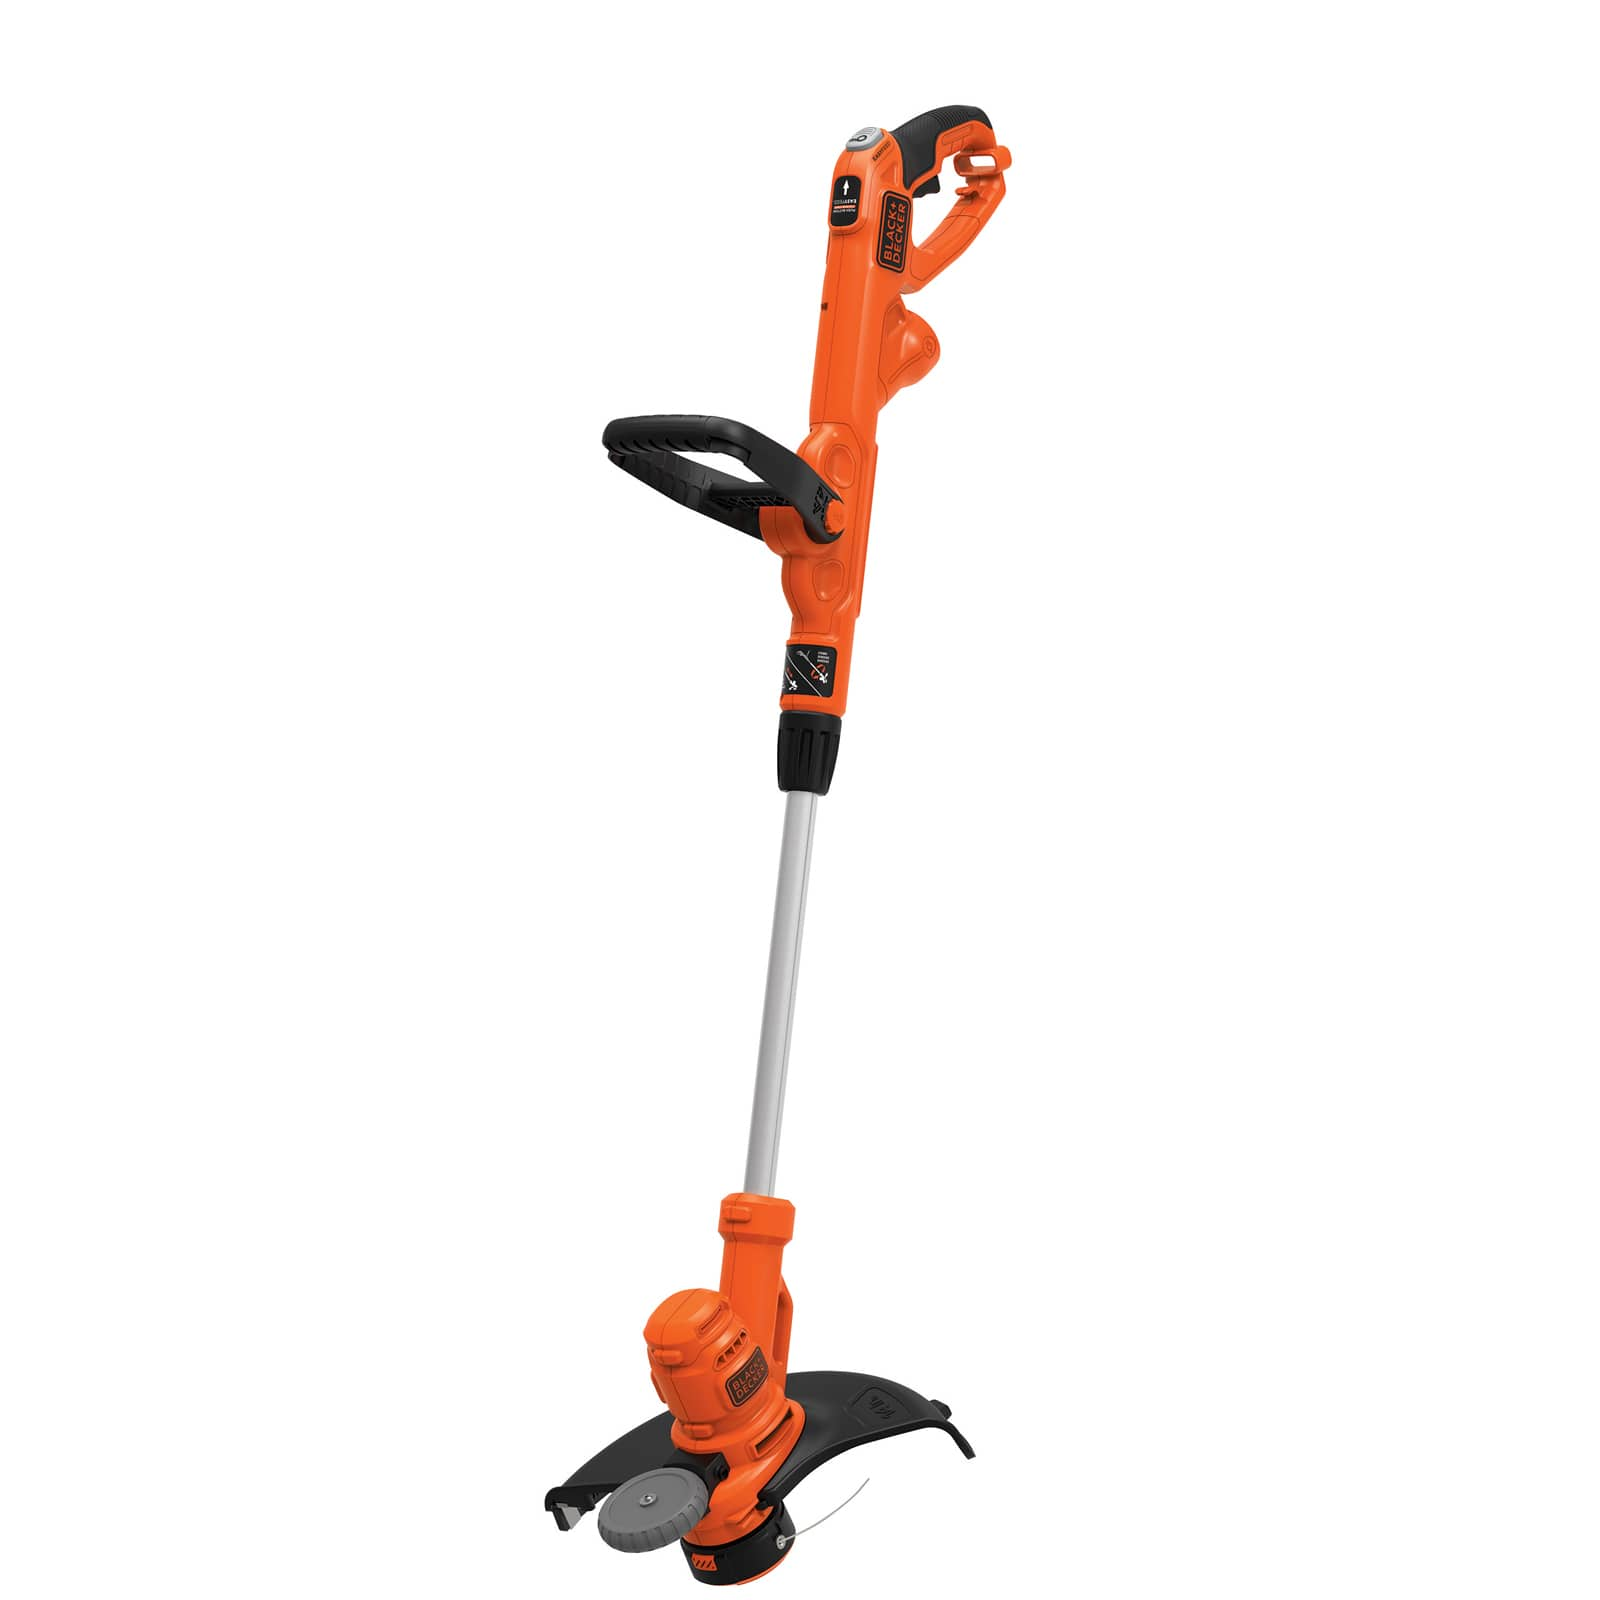 Lowes B&M - Random Black and Decker lawn tools on clearance - YMMV - From $21